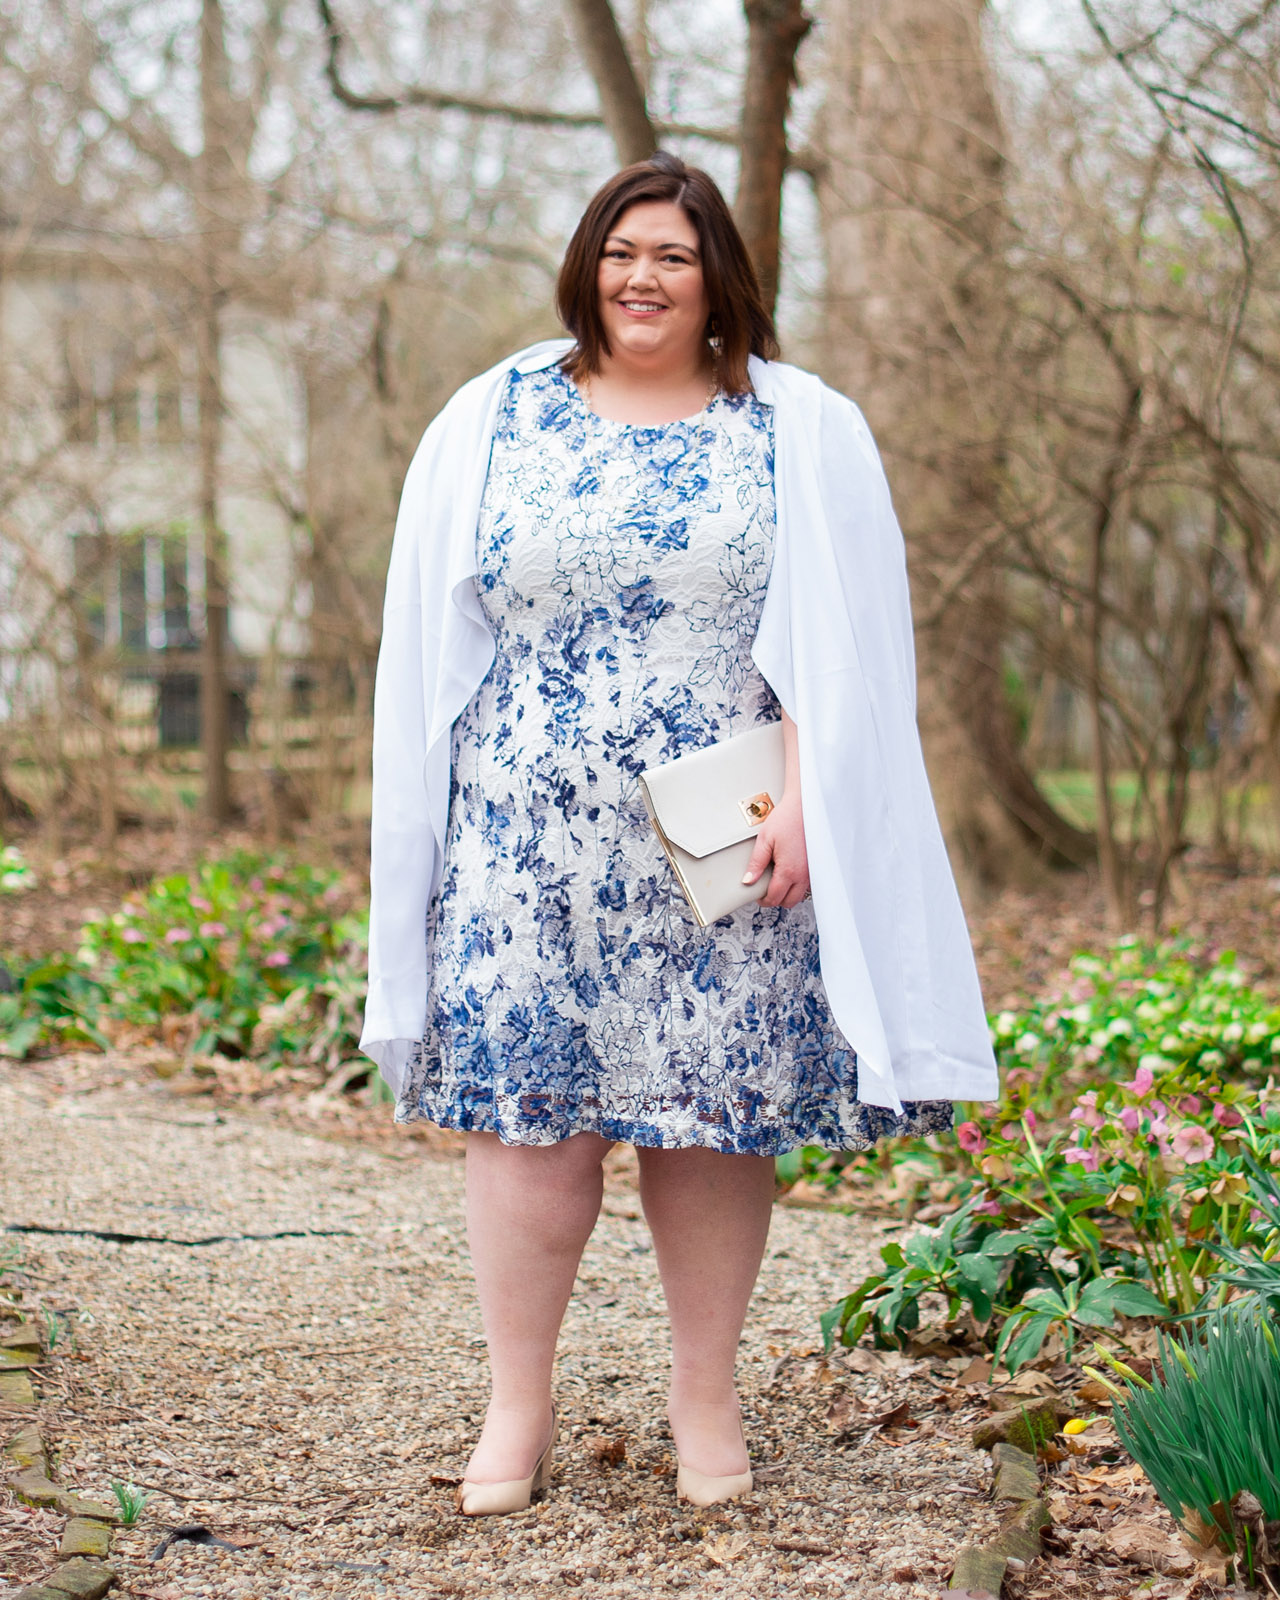 Blue and white lace for spring